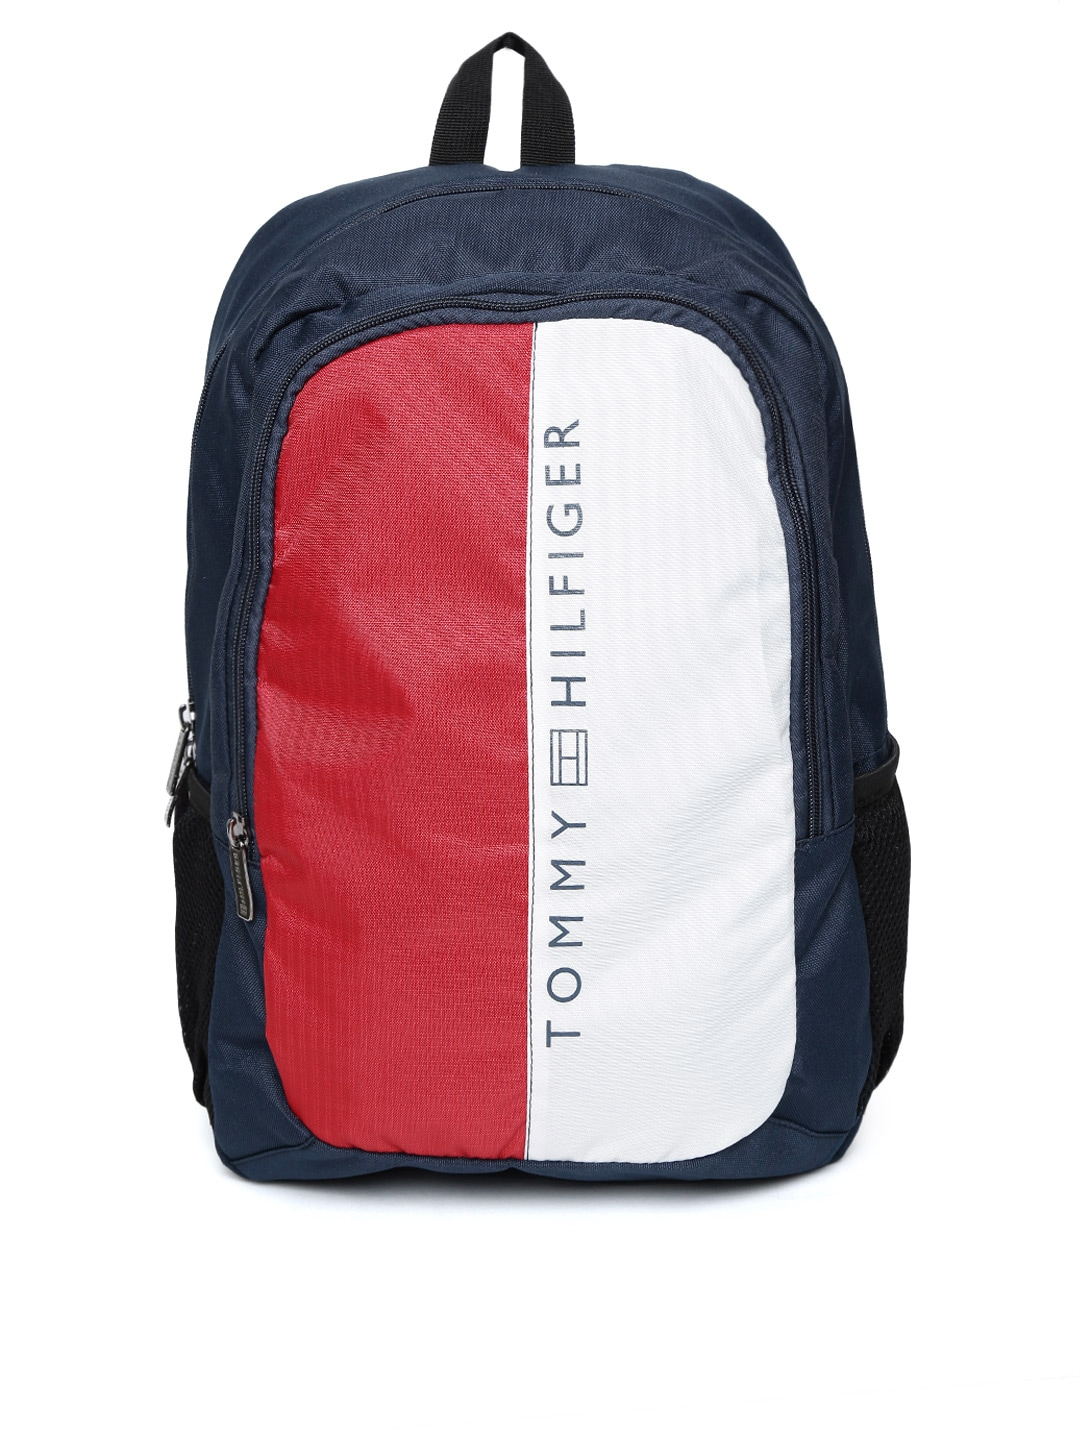 c289b34cab5 Polyester Bags Backpacks - Buy Polyester Bags Backpacks online in India